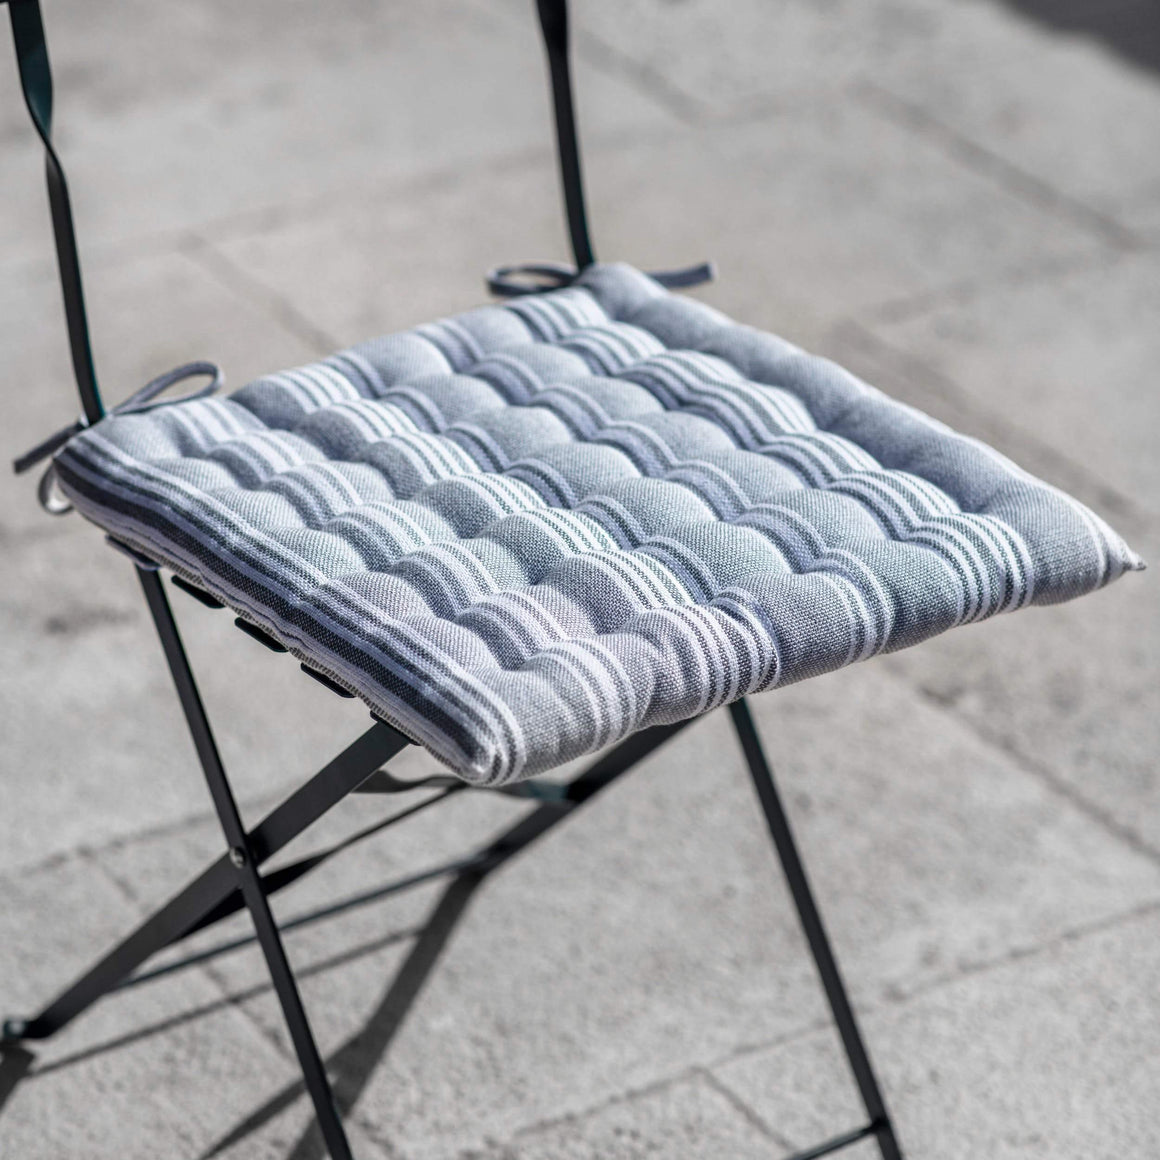 SEAT PAD - EARL GREY STRIPE